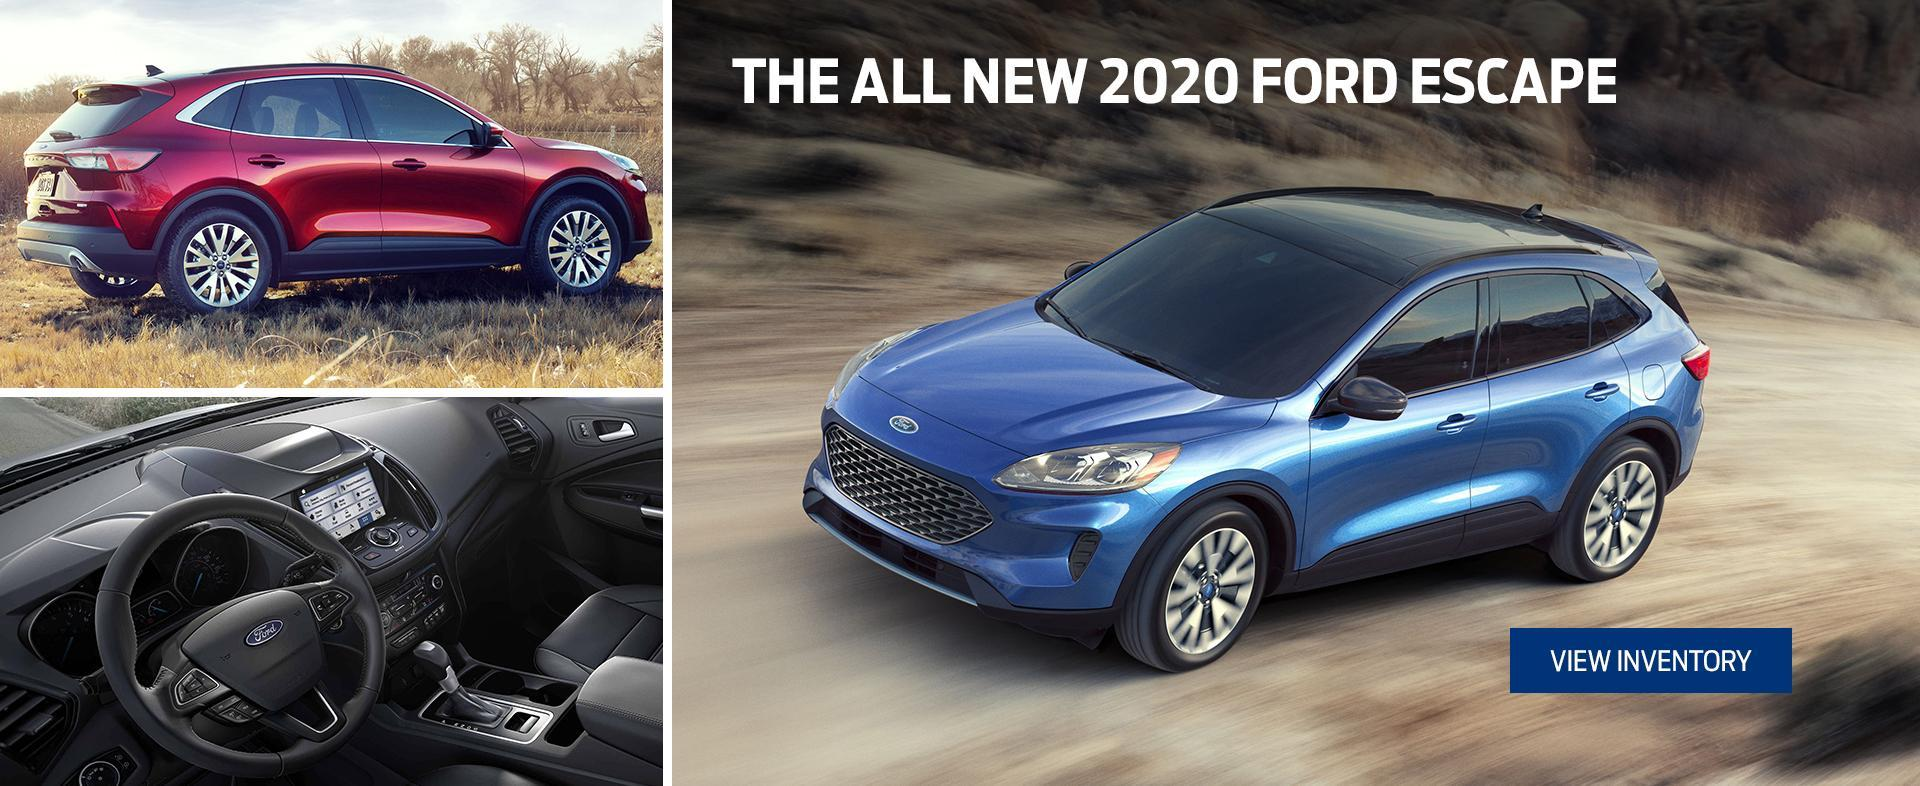 Ford Home 2020Escape